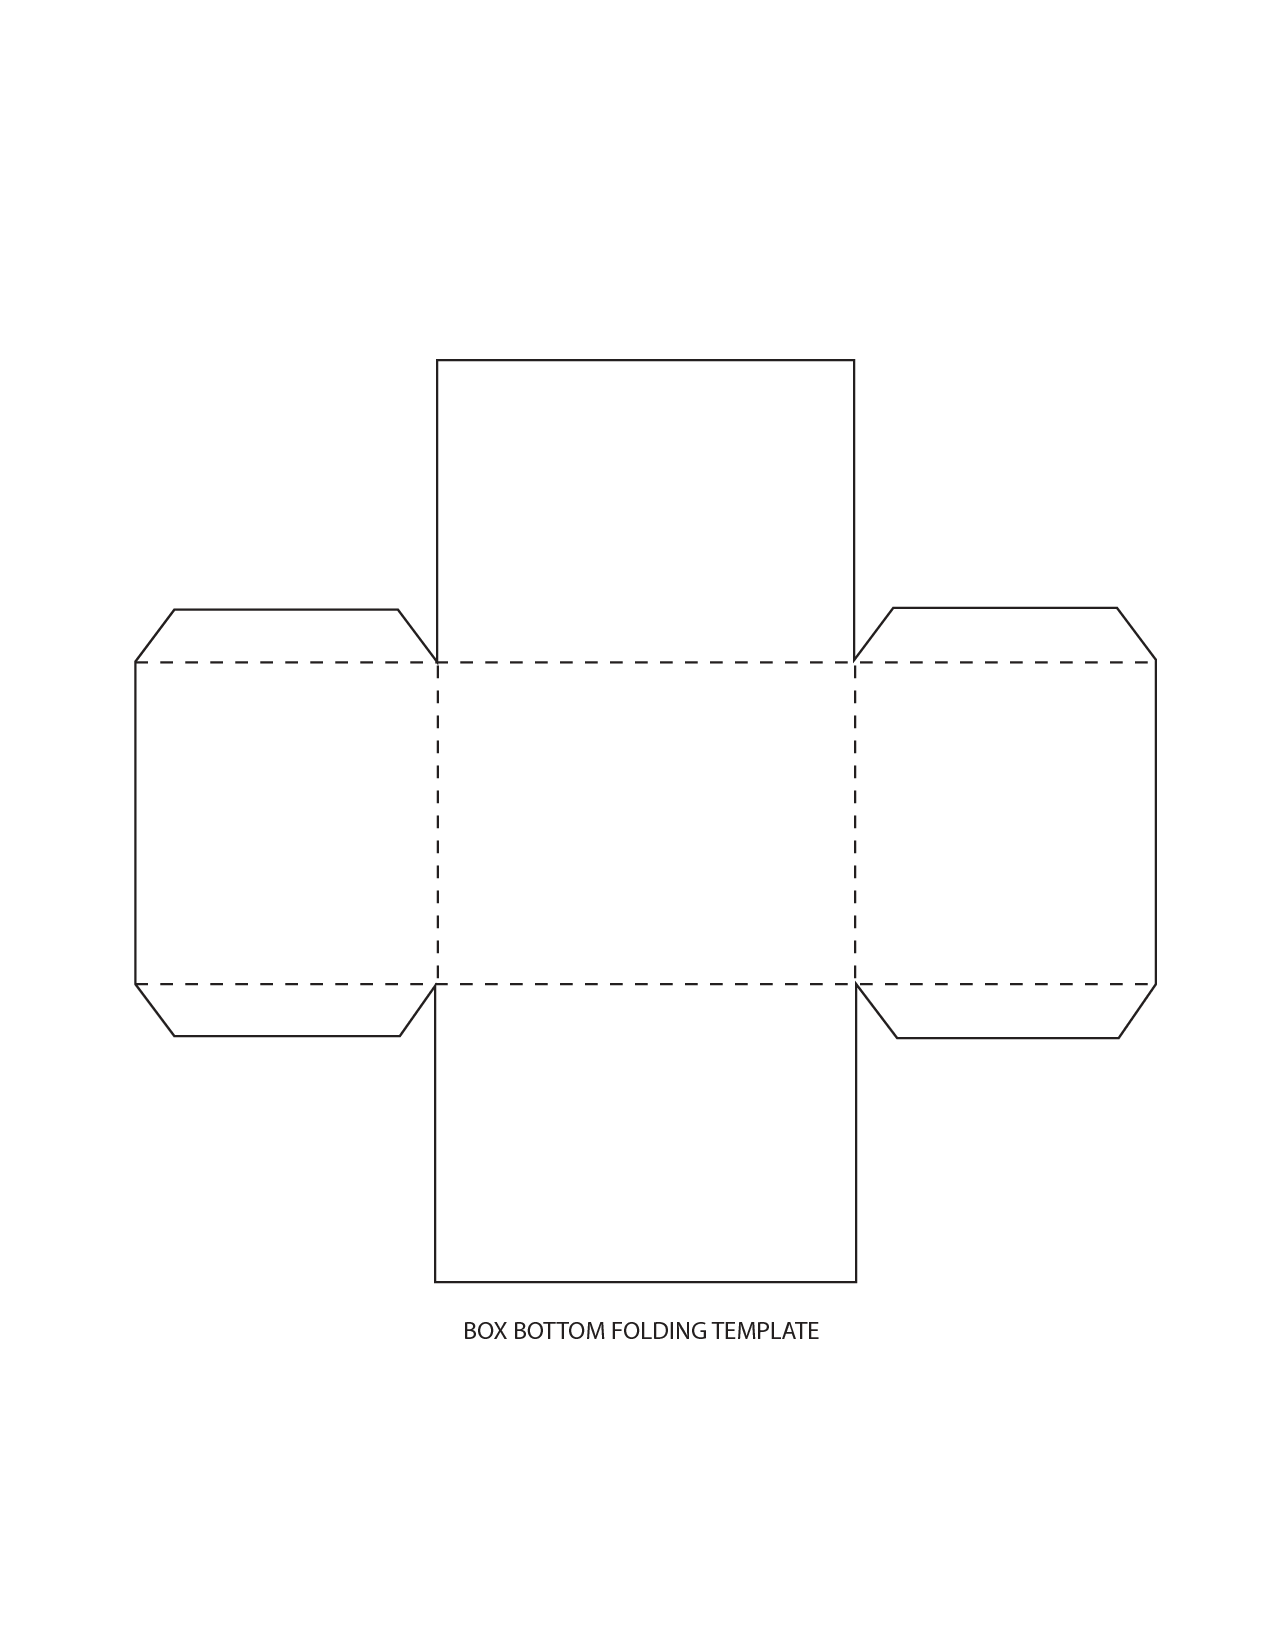 Cookie Box Templates - Download as PDF | Projects to Try ...